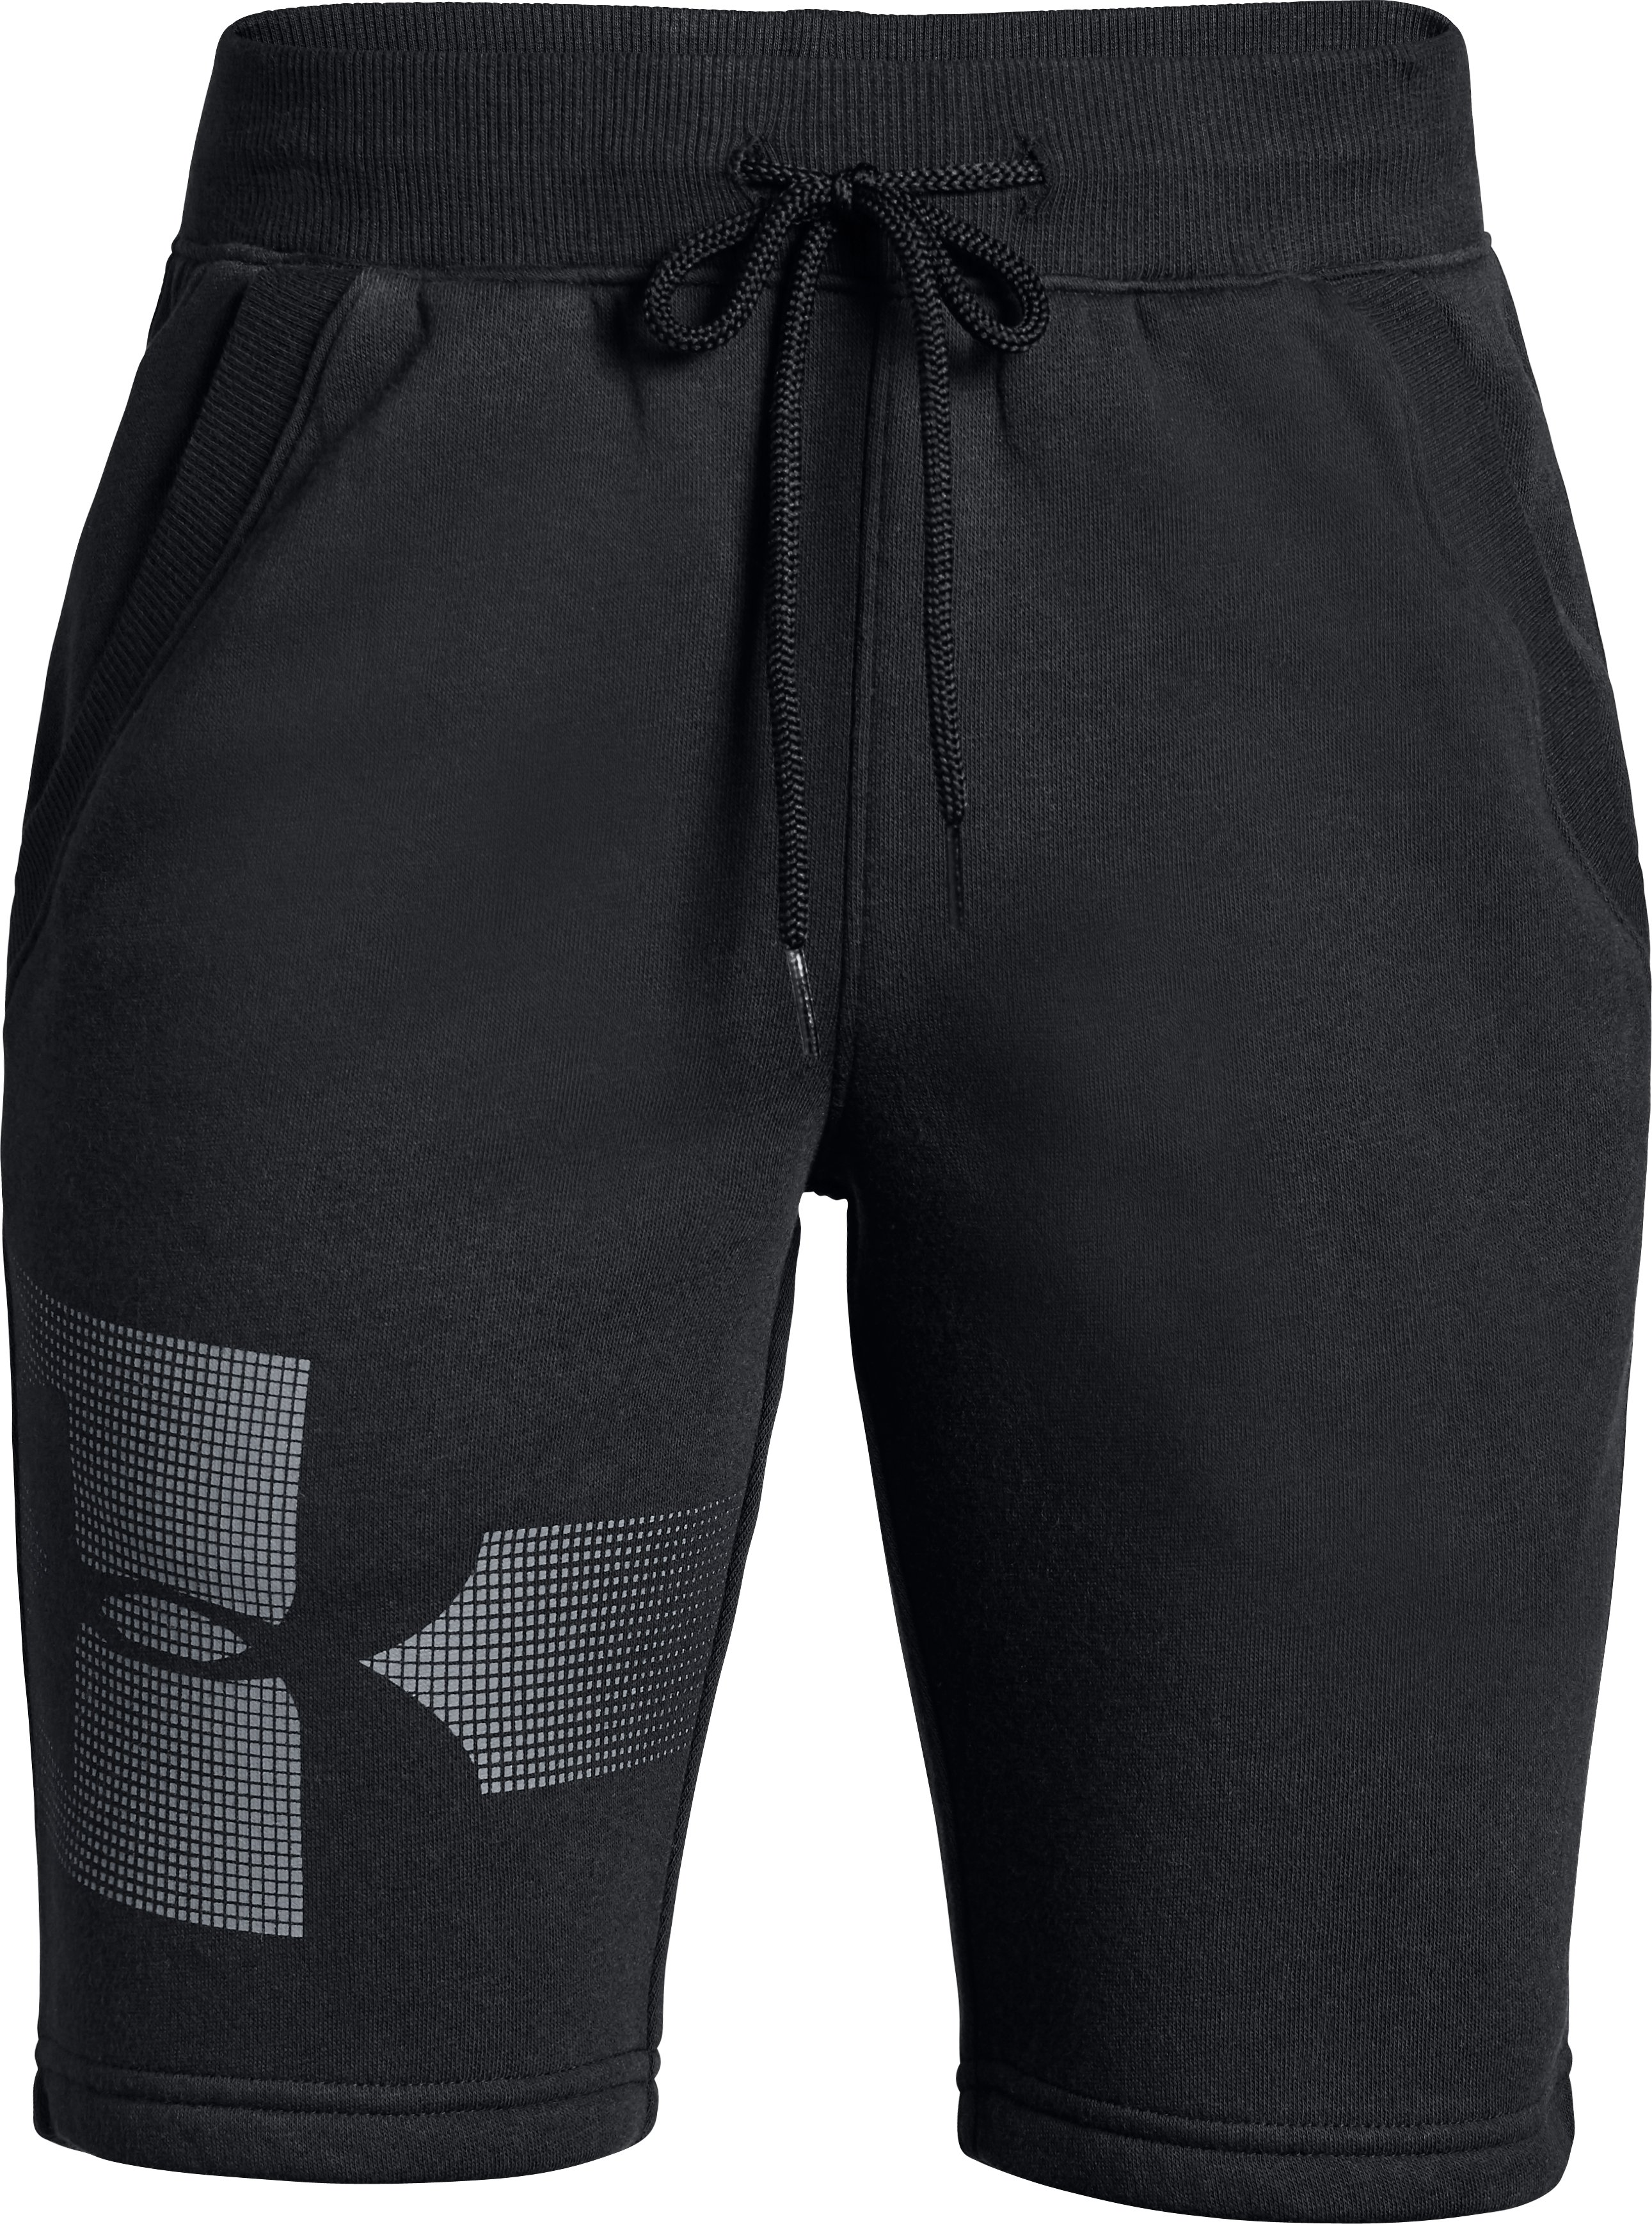 Rival Graphic Fleece Short, Black , zoomed